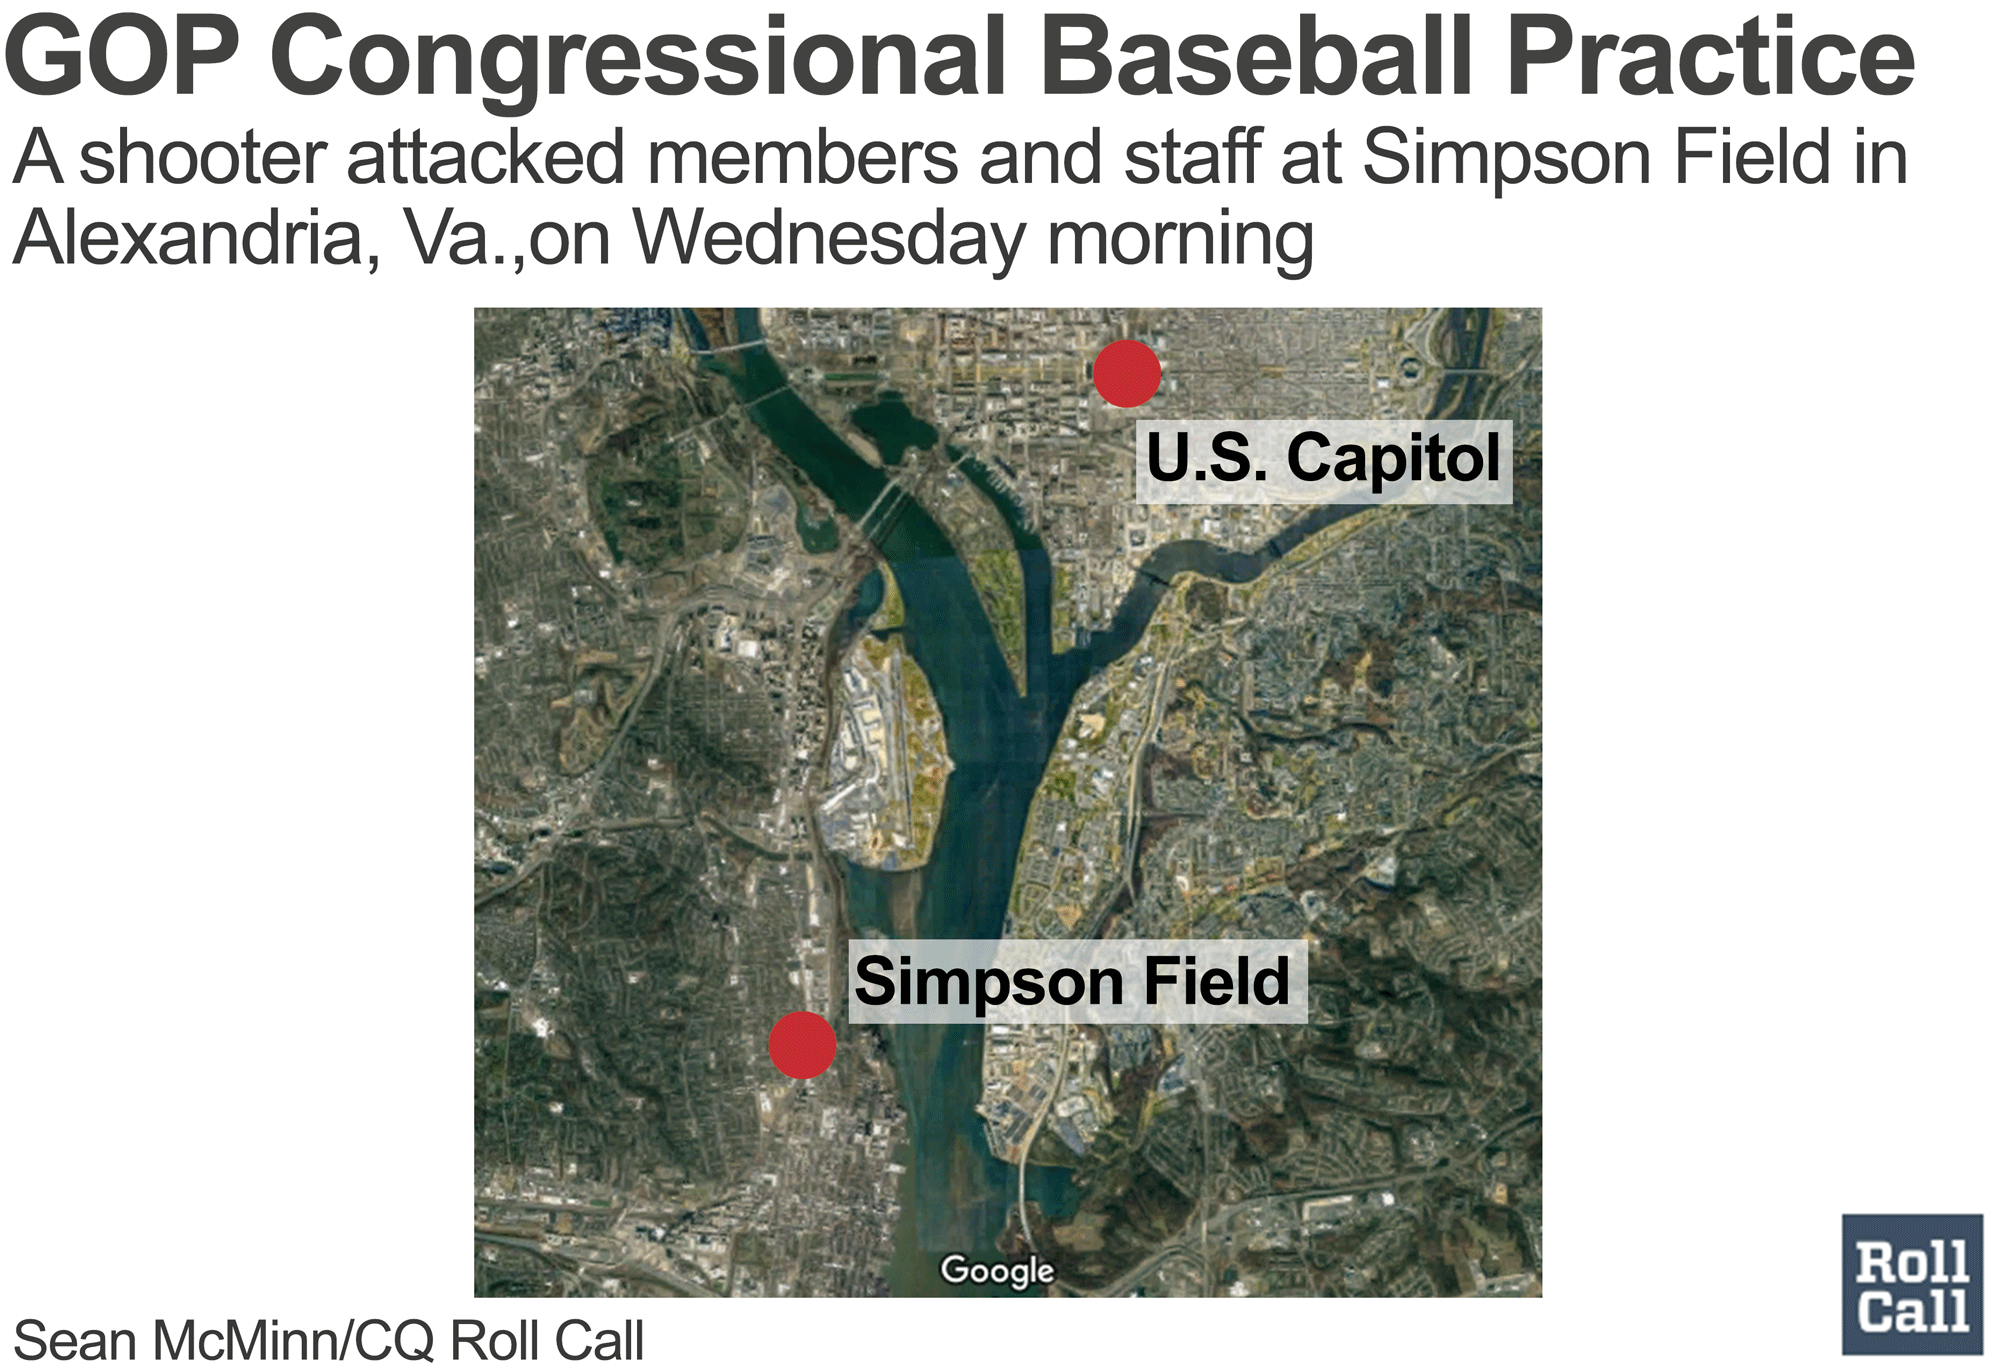 Congressman Plans to Carry Gun After Baseball Practice Shooting